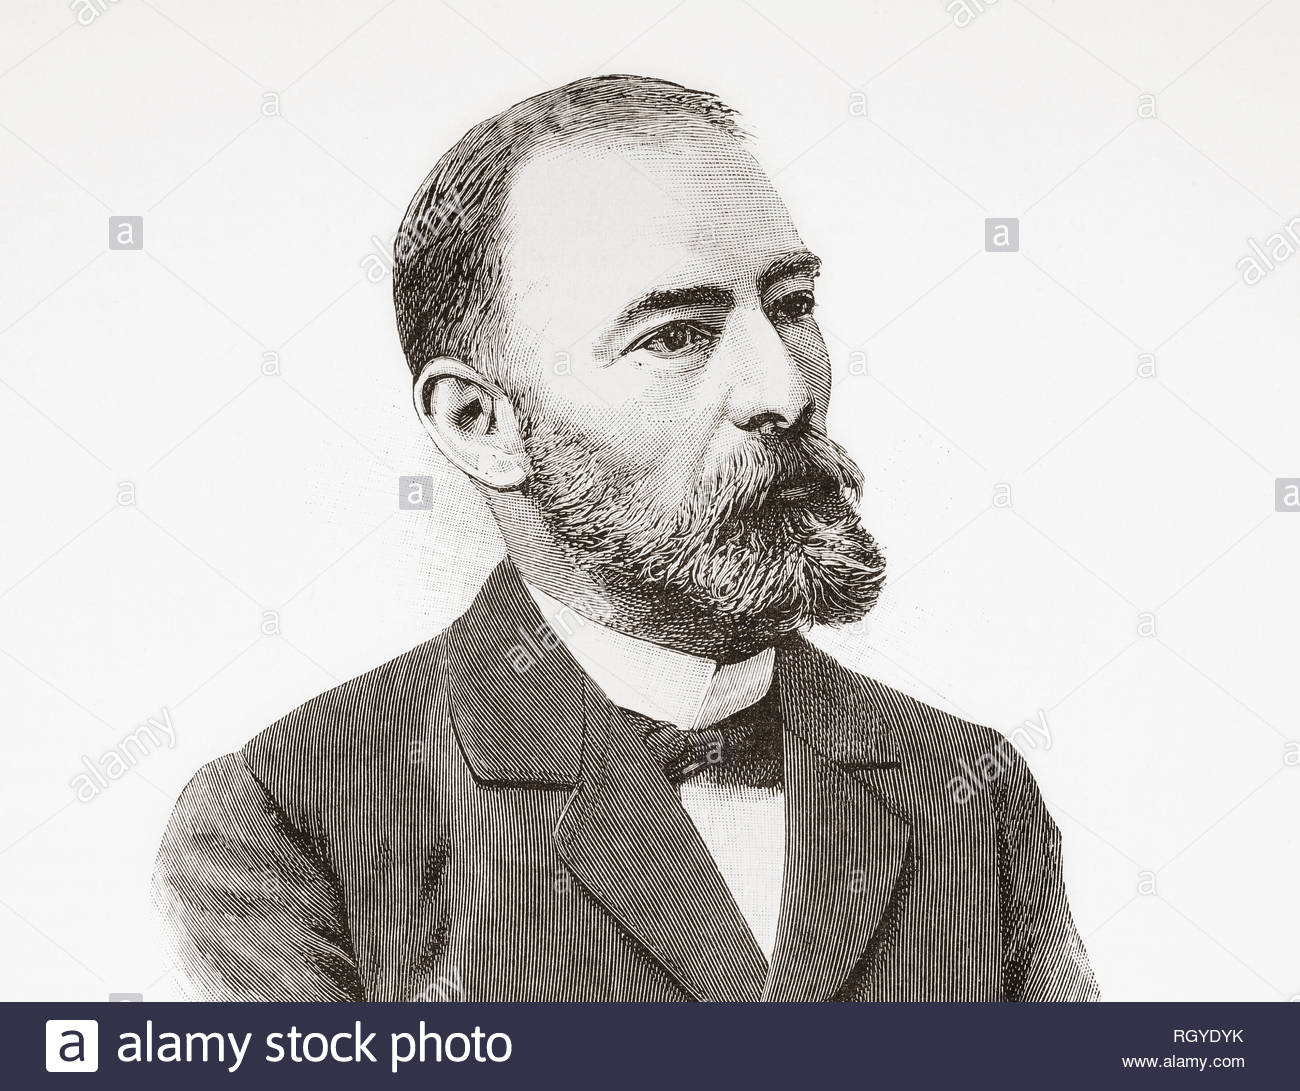 Alejandro San Martin y Satrustegui, 1847- 1908. Spanish physician and politician, Minister of Public Instruction and Fine Arts during the reign of Alfonso XIII.  From La Ilustracion Espanola y Americana, published 1892. - Stock Image